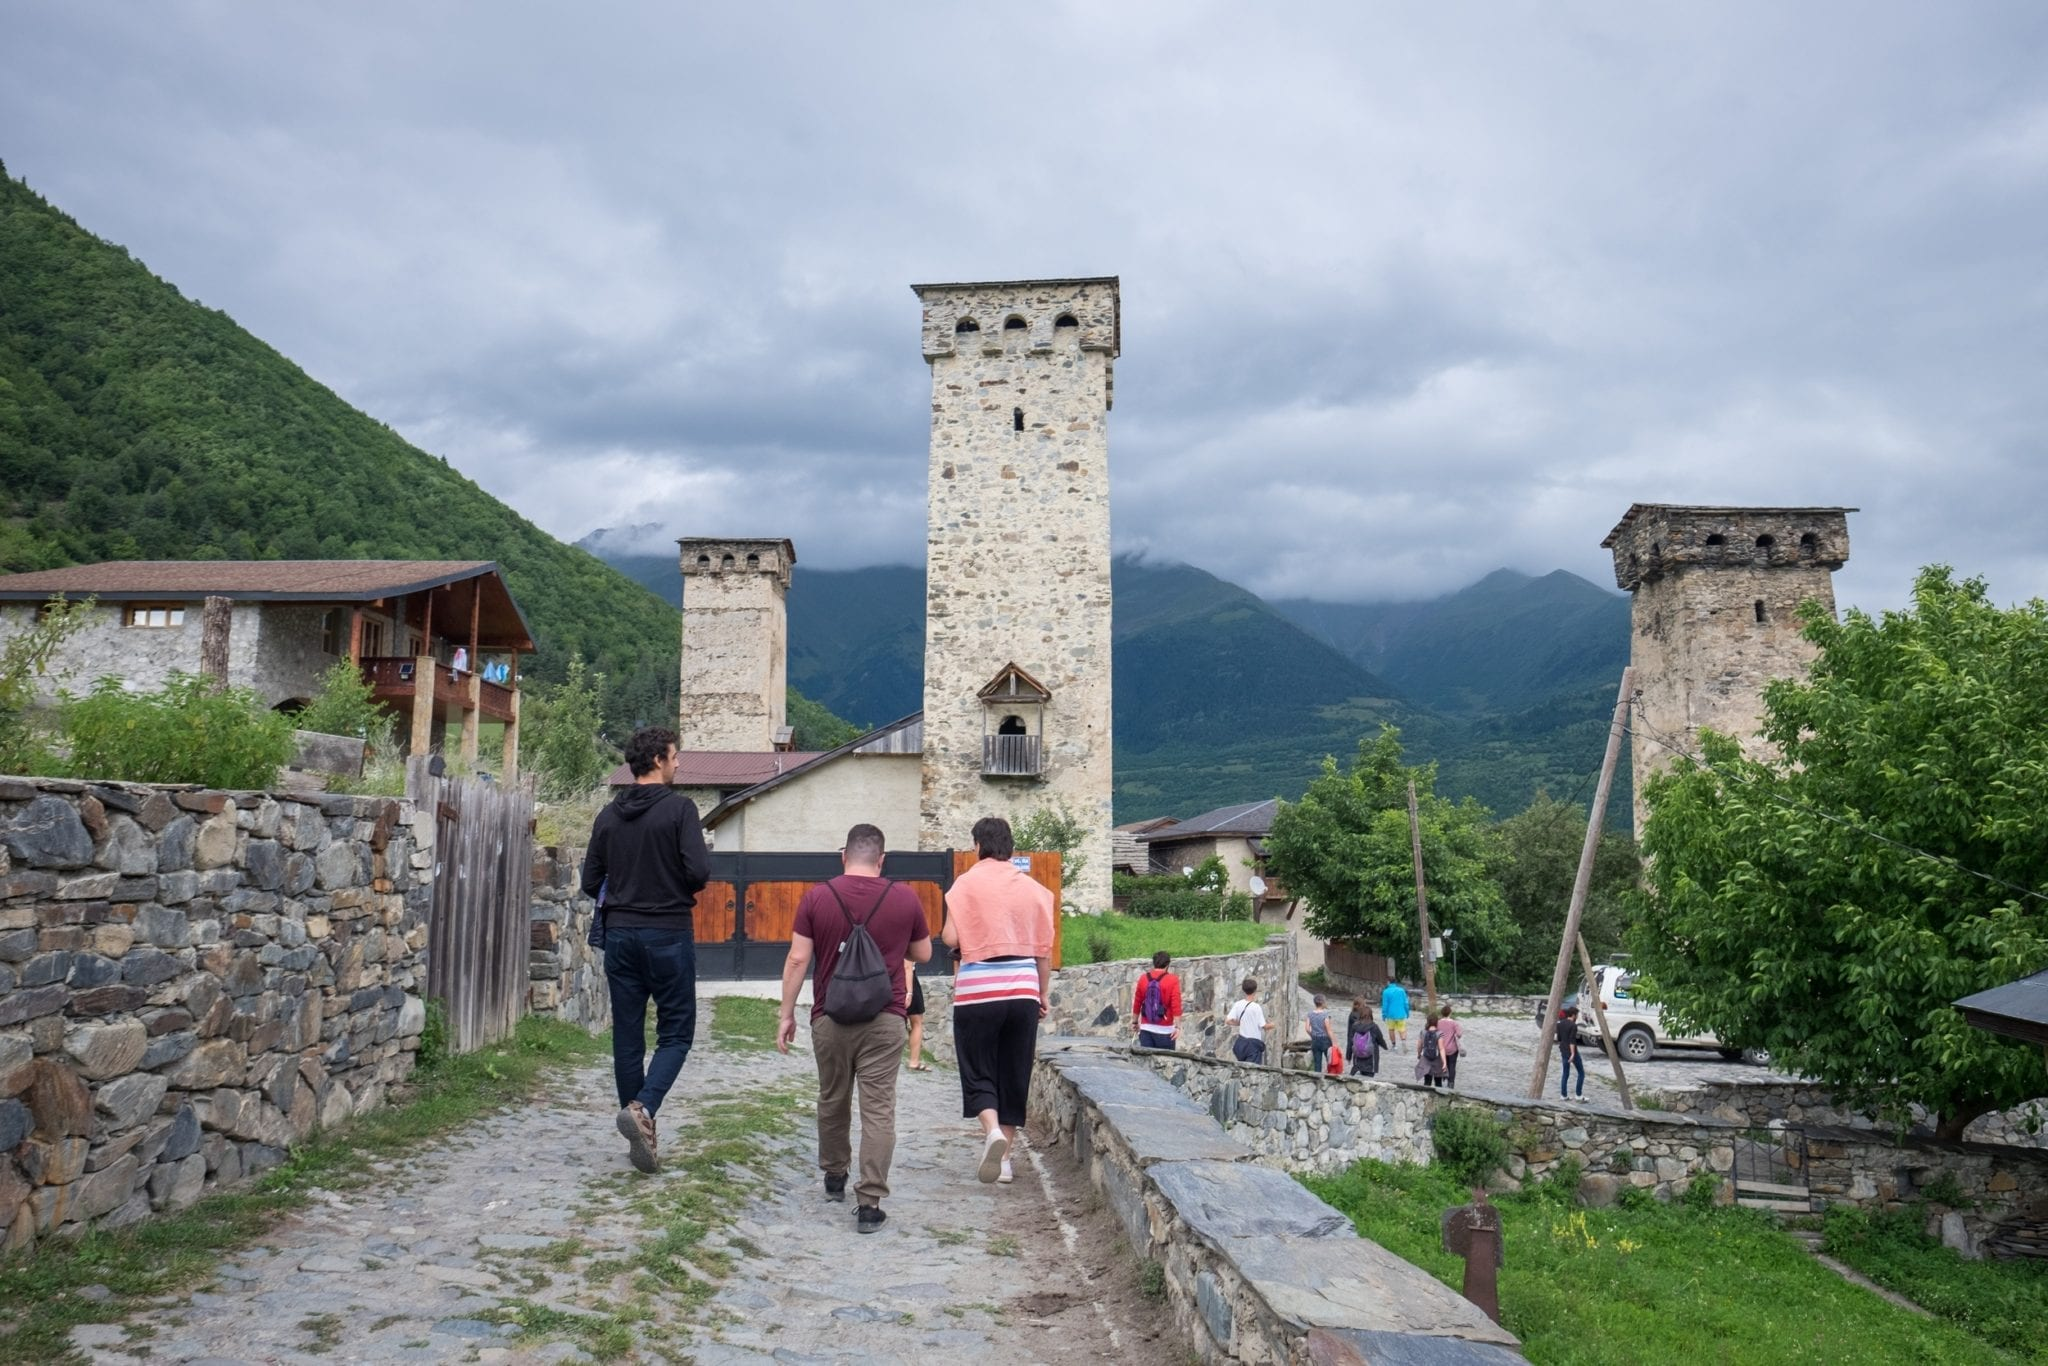 A group of bloggers walking toward one of the large stone towers, cloudy sky overhead.